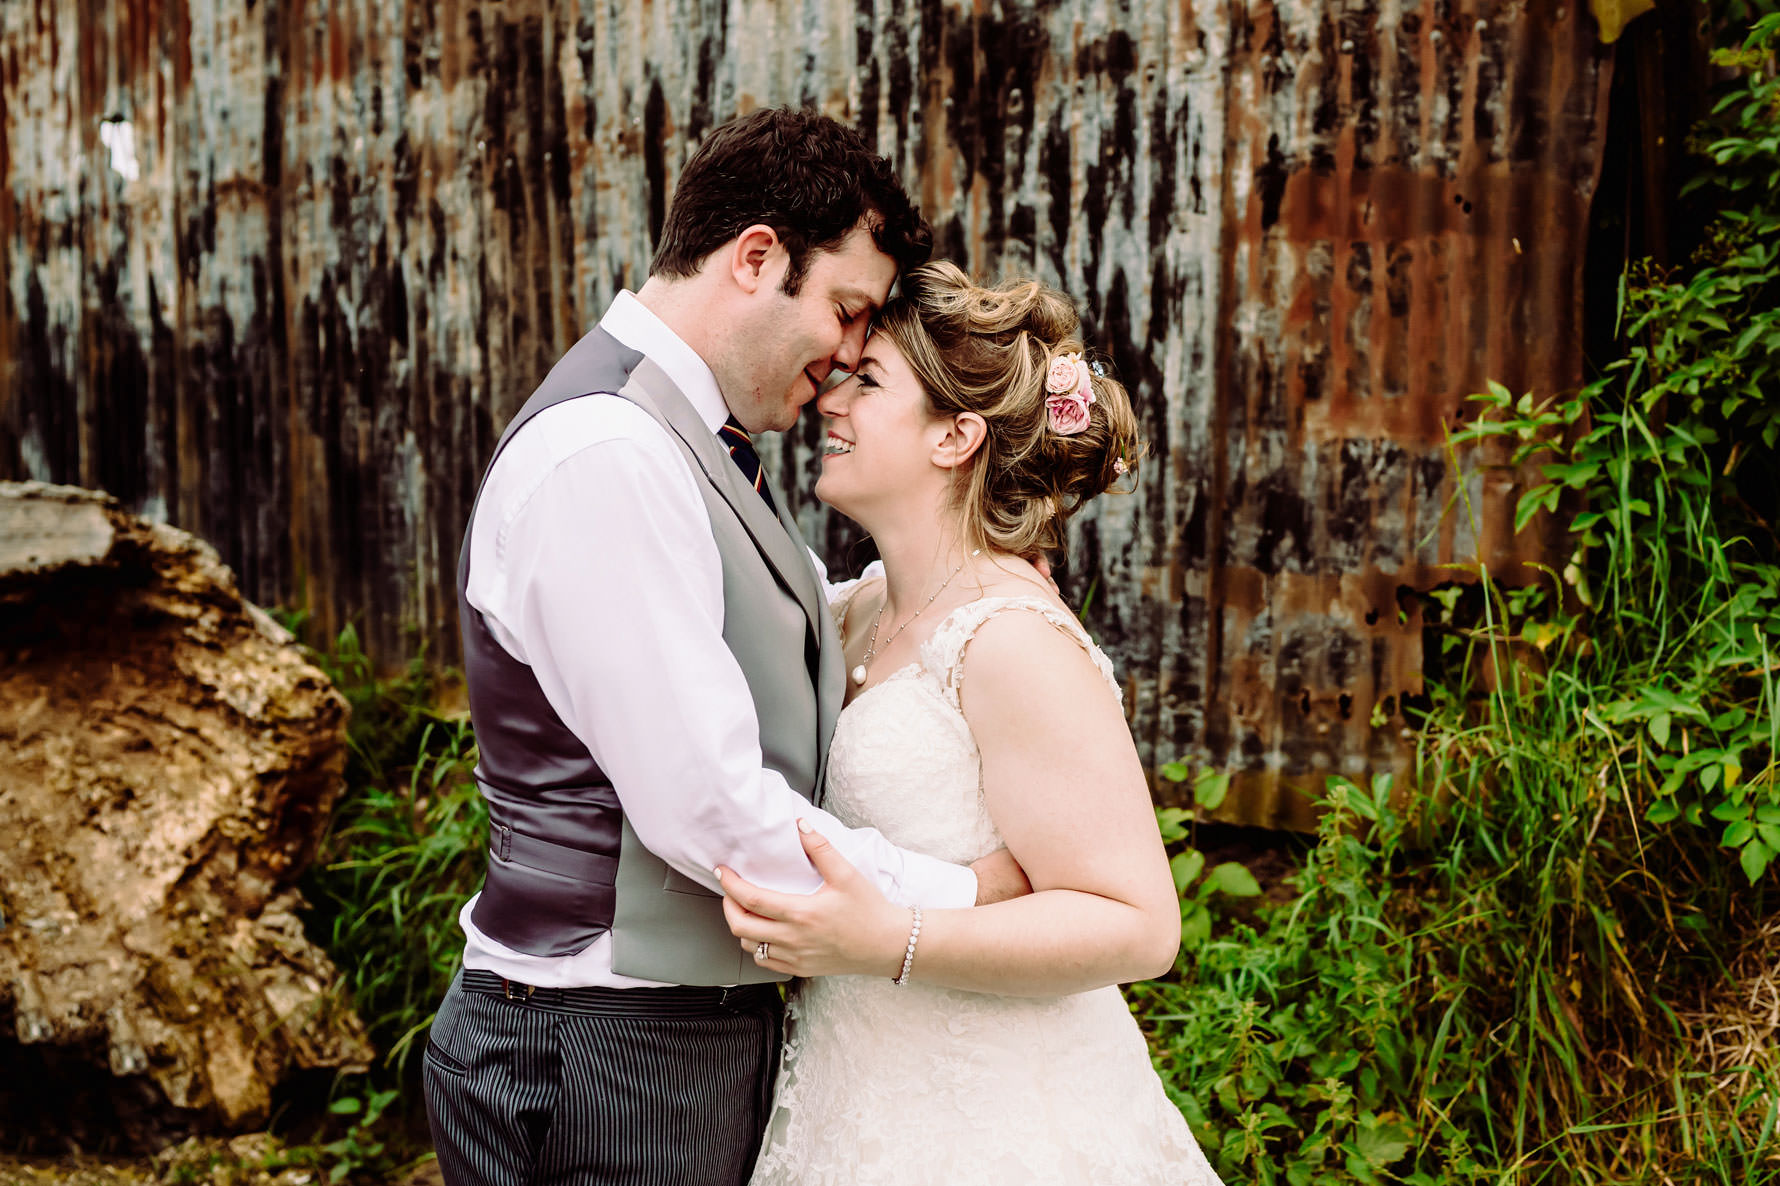 relaxed wedding photography by elliot w patching